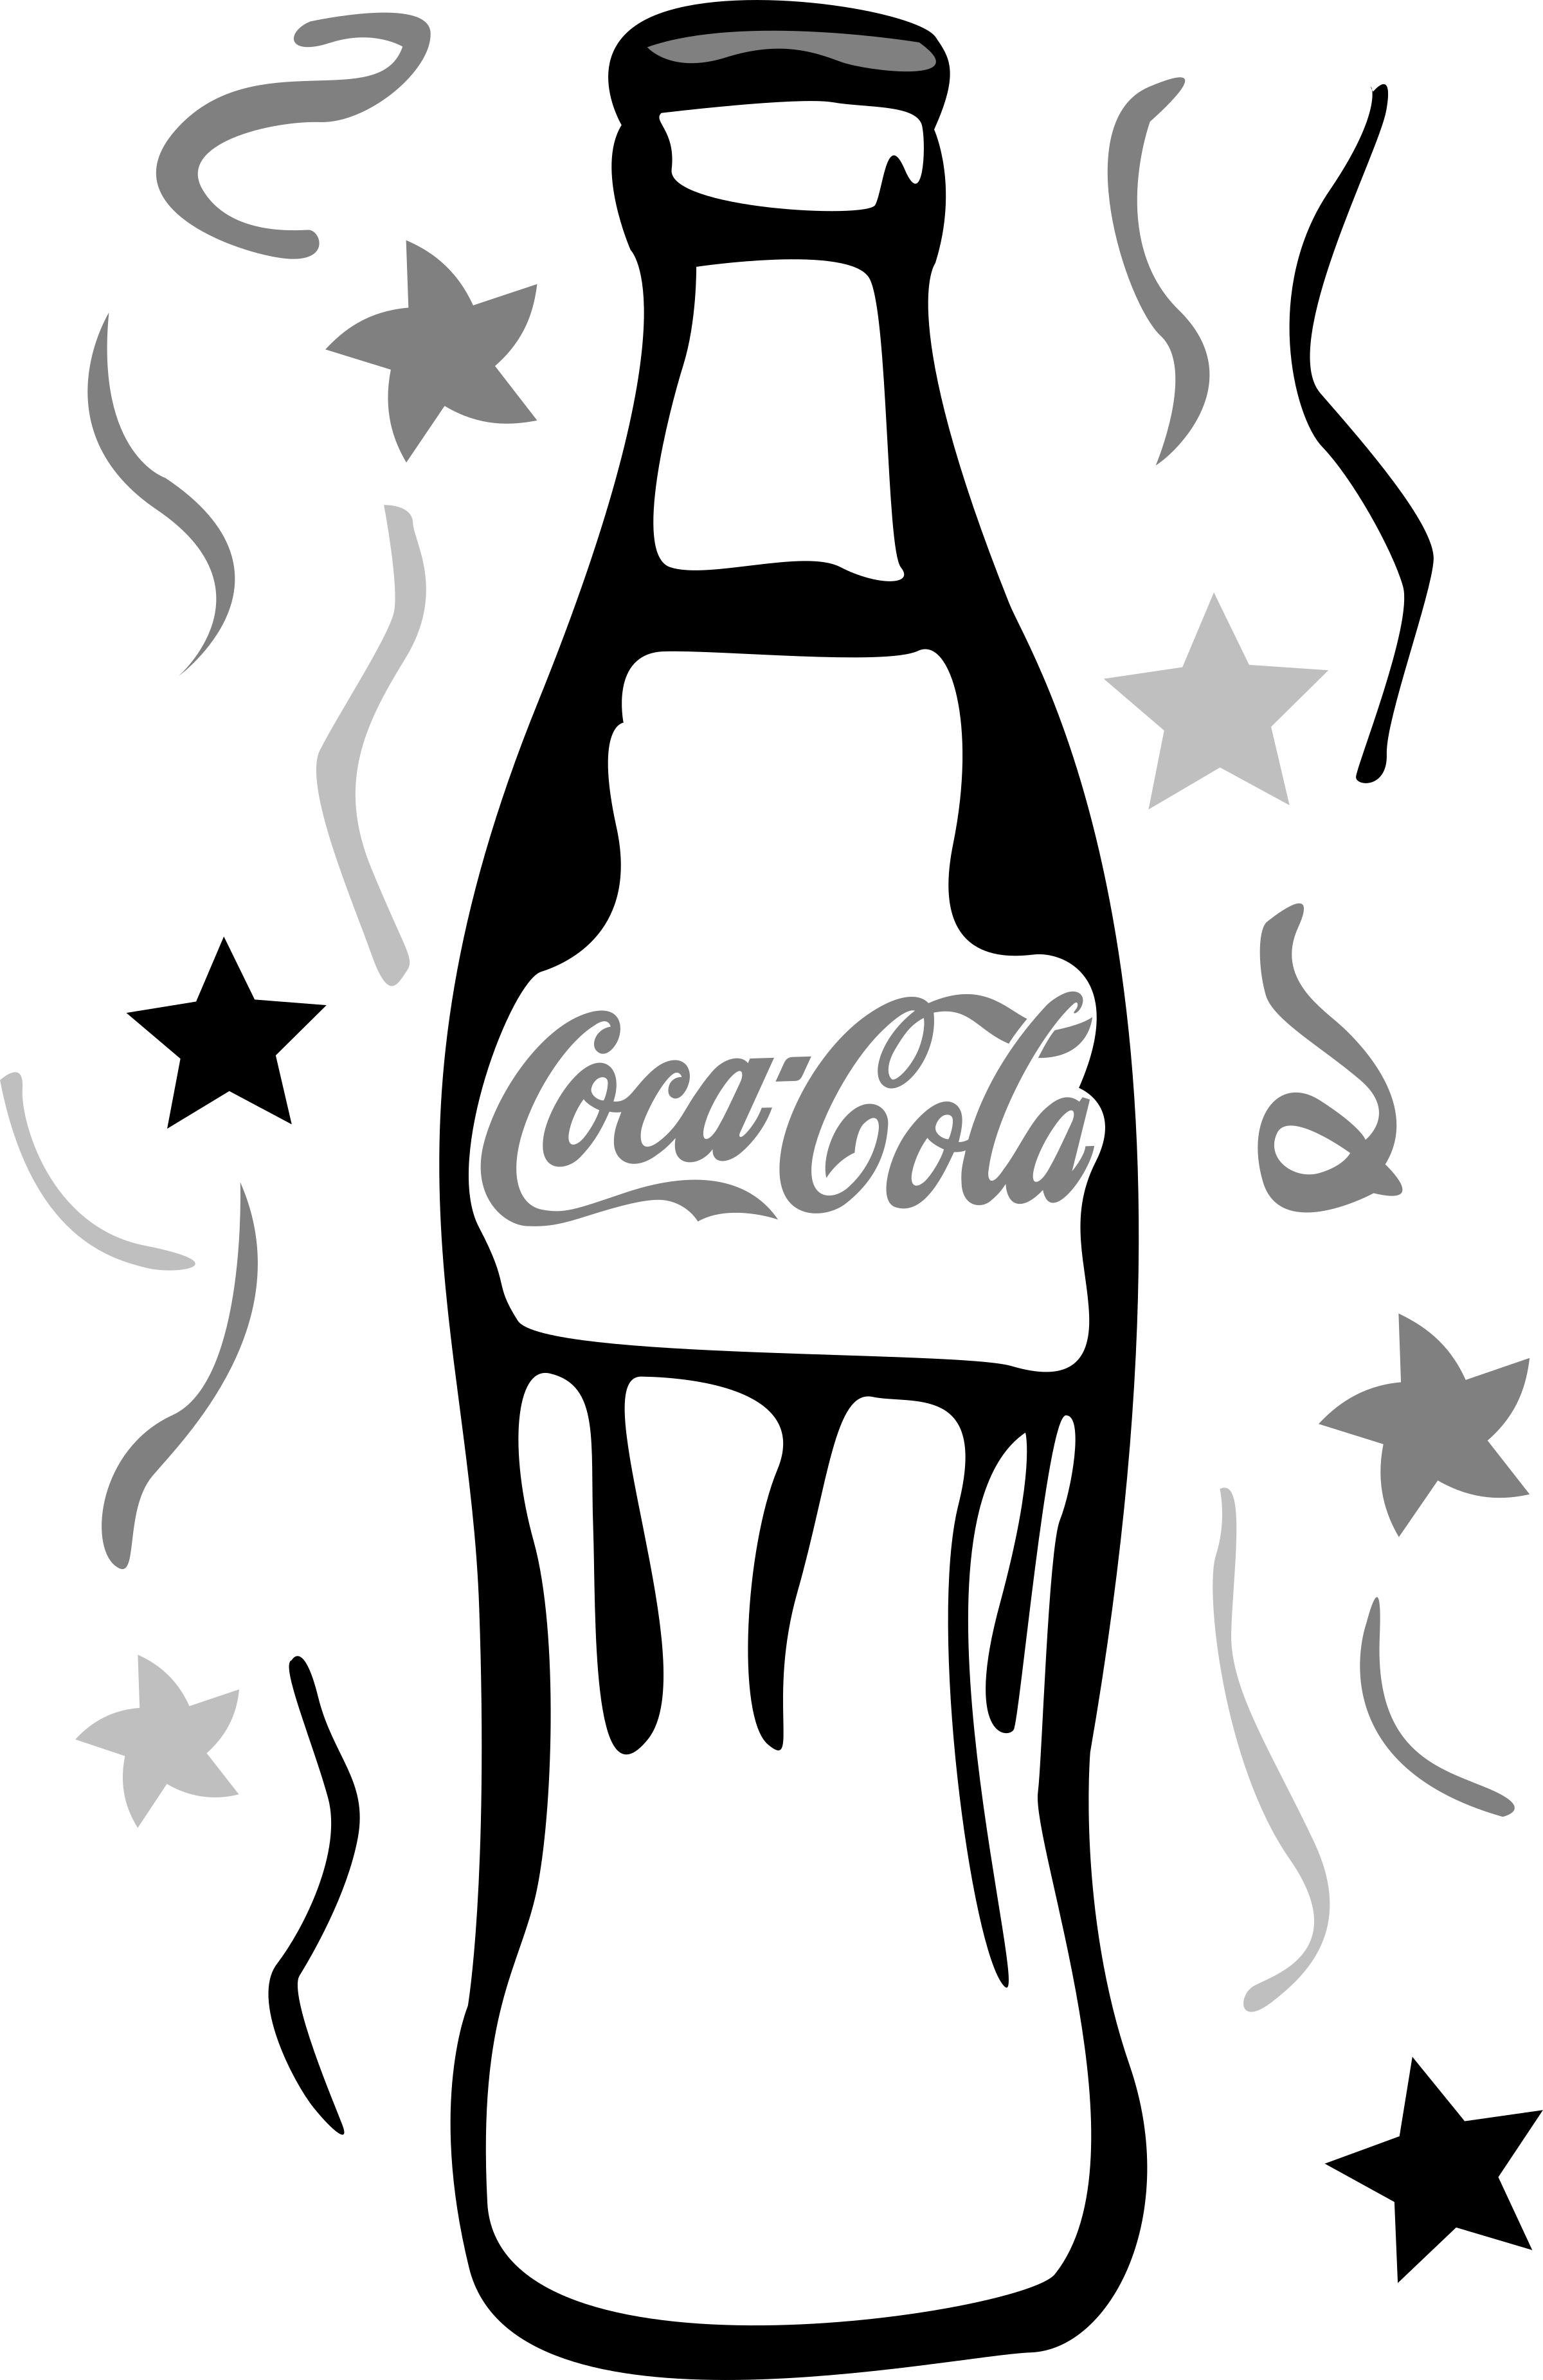 coca cola bottle2 logo png transparent amp svg vector